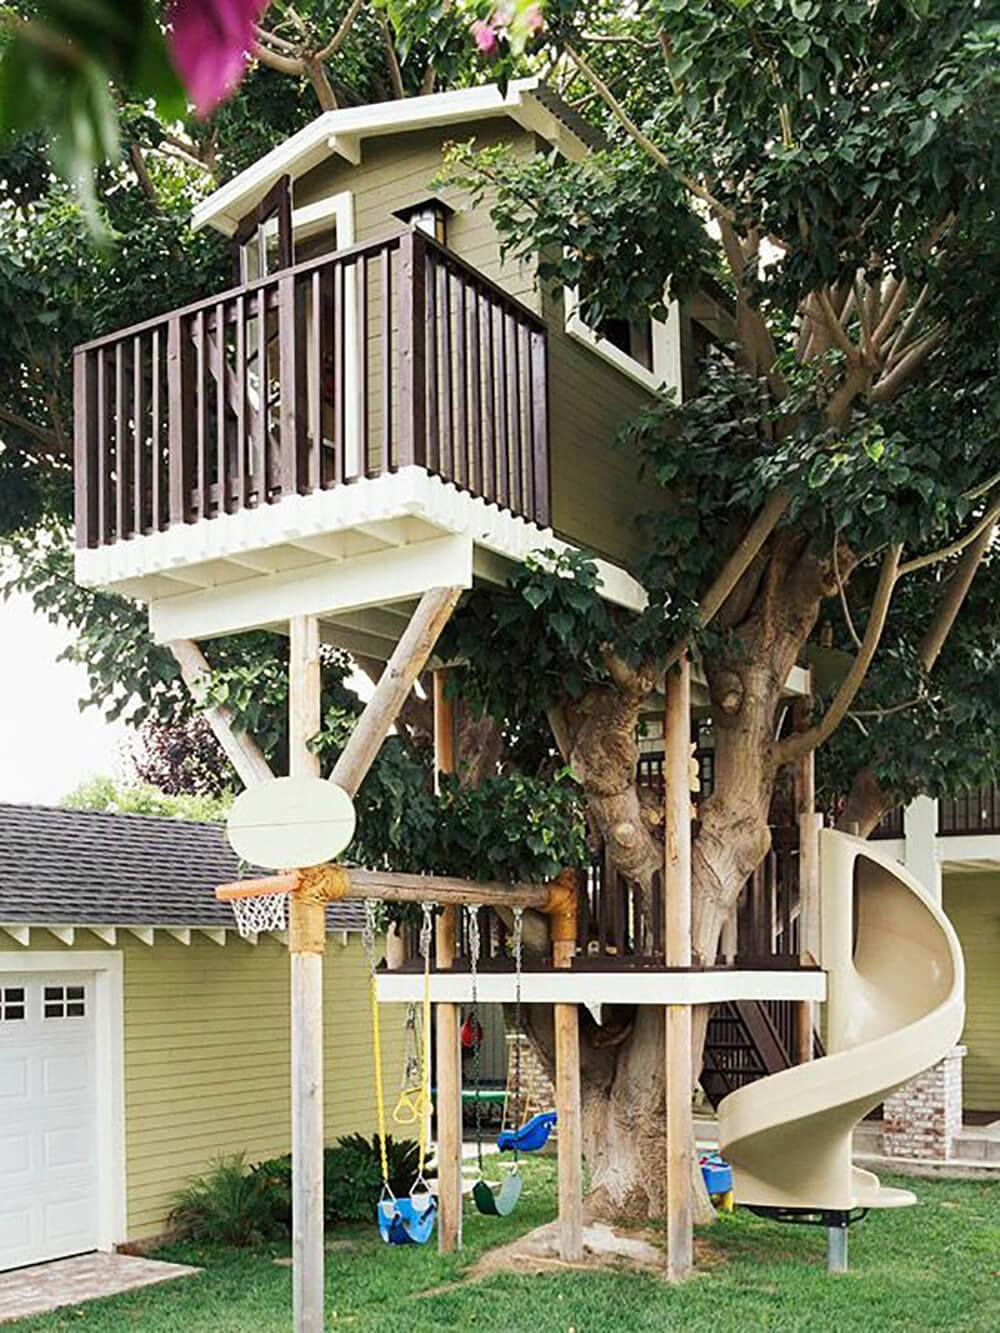 This fantastic, multi-level treehouse features a large spiral slide, a swing set, basketball hoop, balcony, and a spacious finished interior.